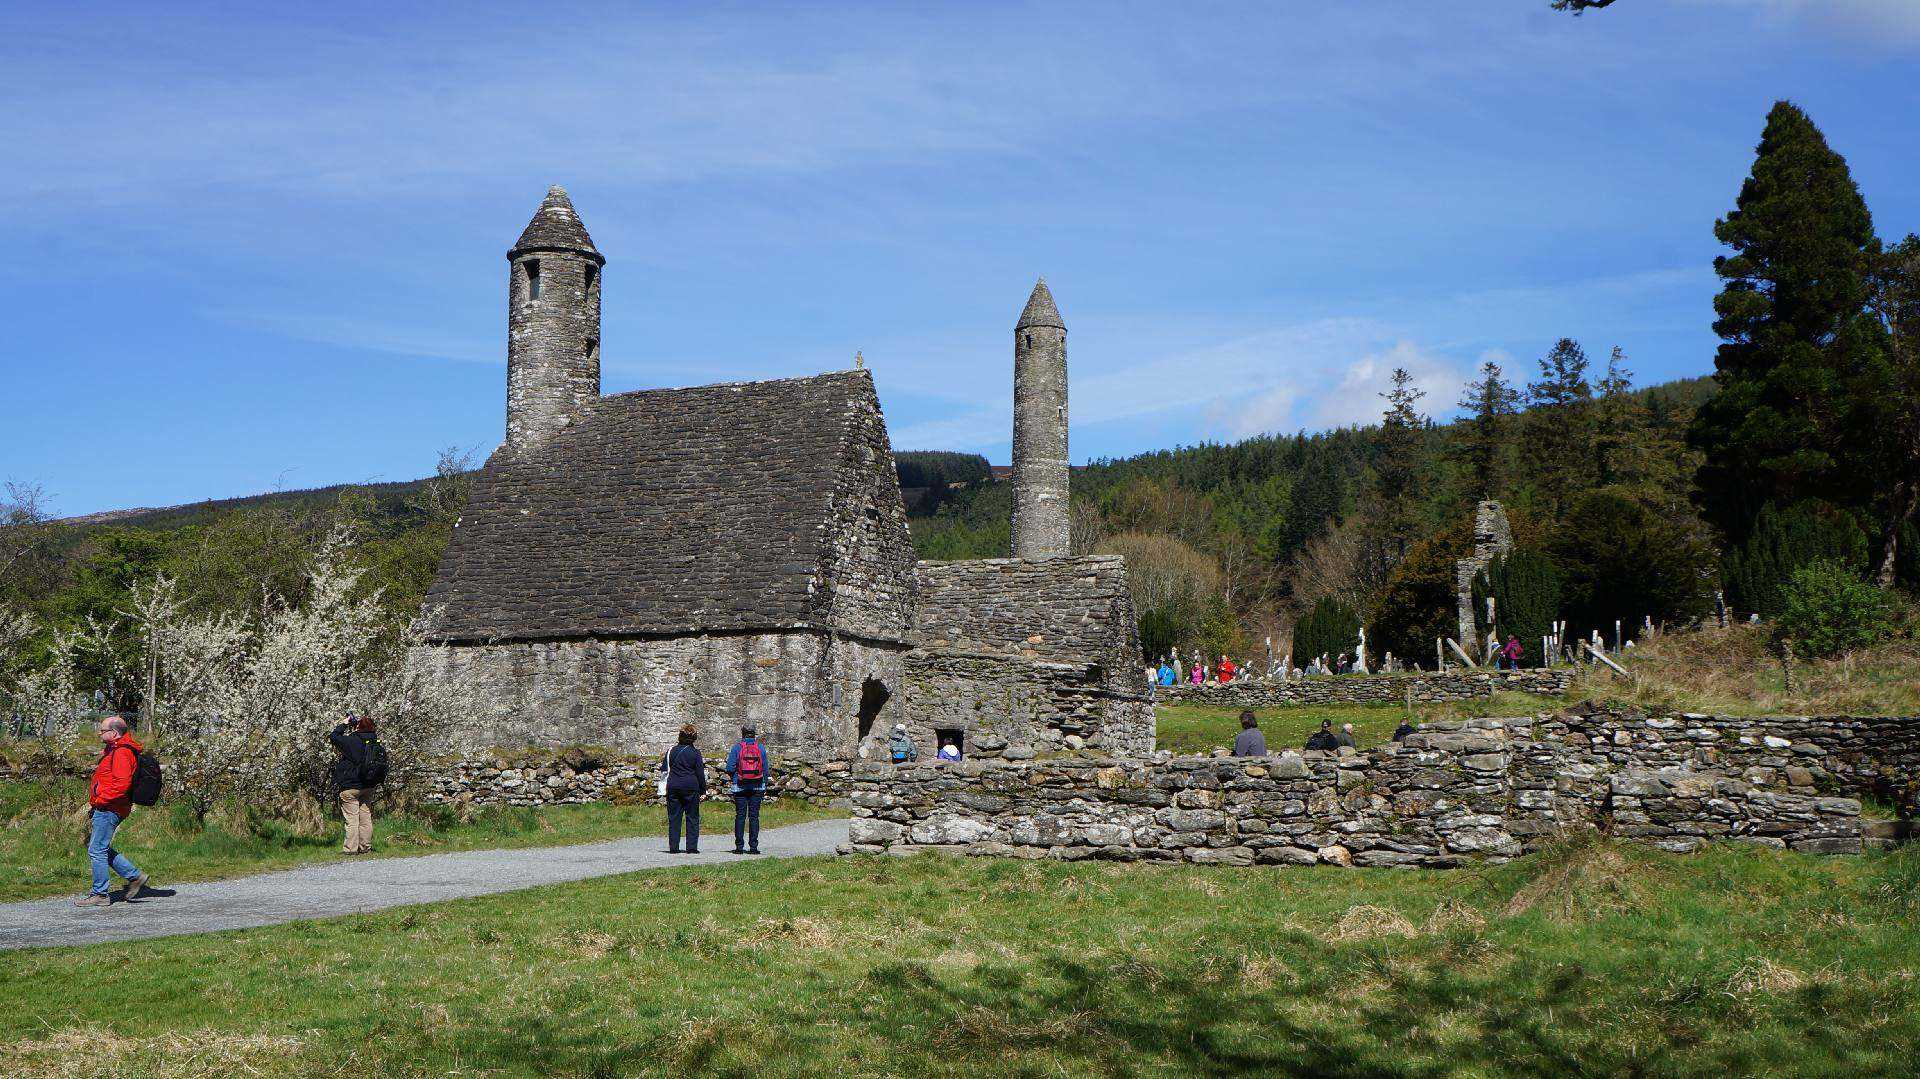 Glendalough monastic city on the Wicklow Way, Ireland